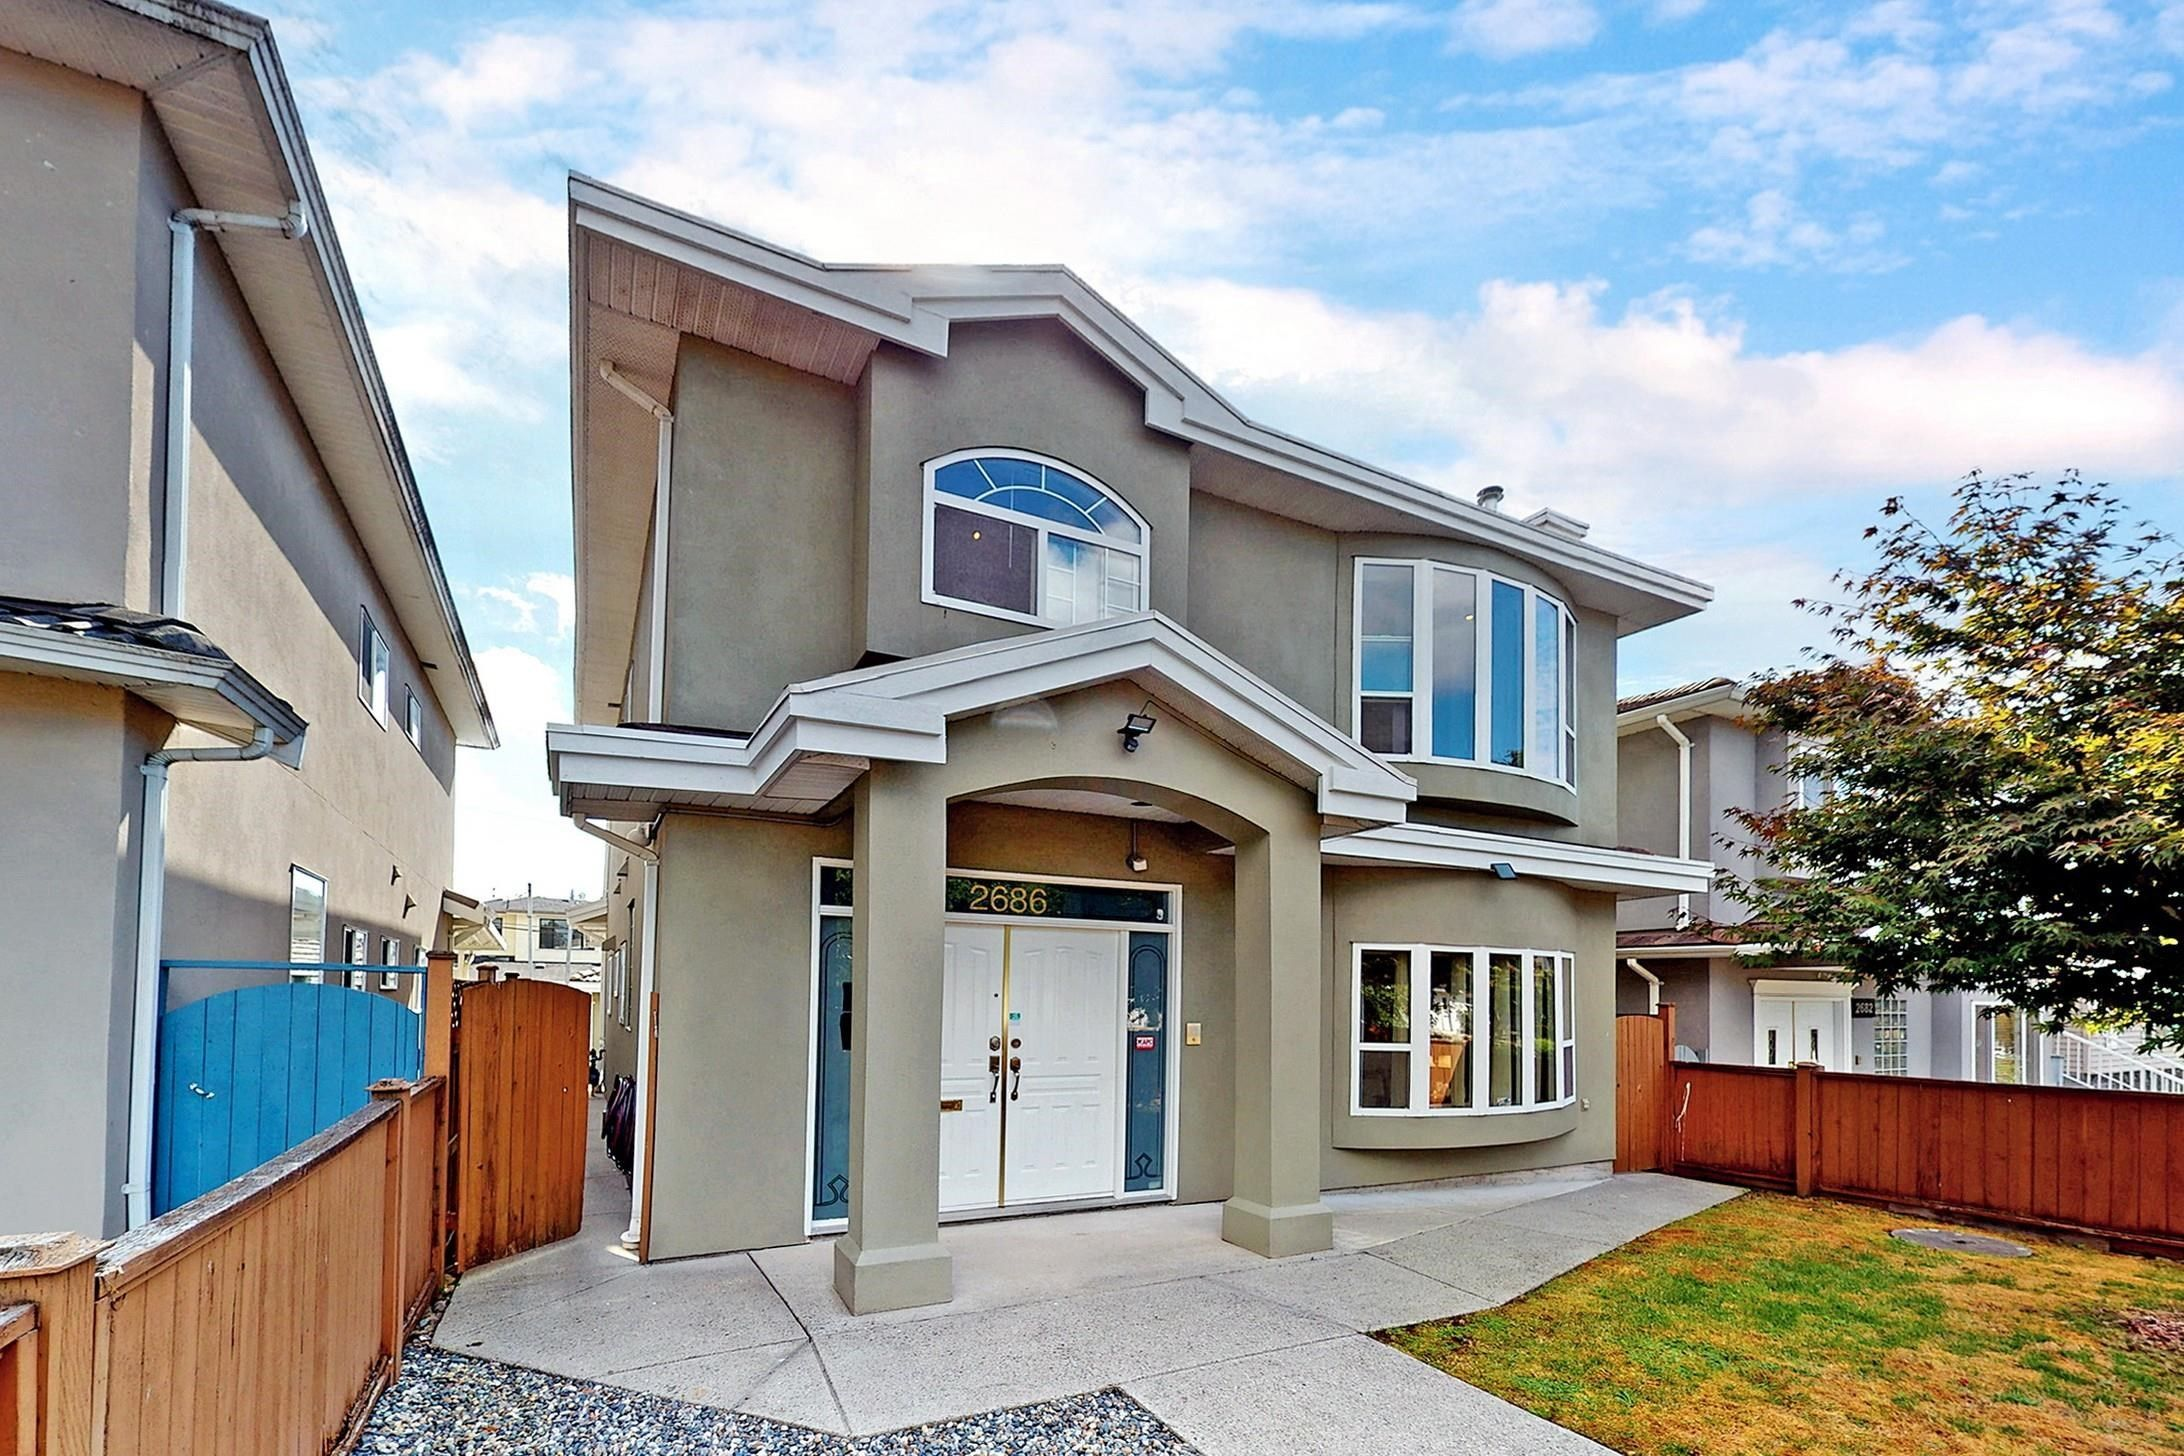 Main Photo: 2686 WAVERLEY Avenue in Vancouver: Killarney VE House for sale (Vancouver East)  : MLS®# R2617888